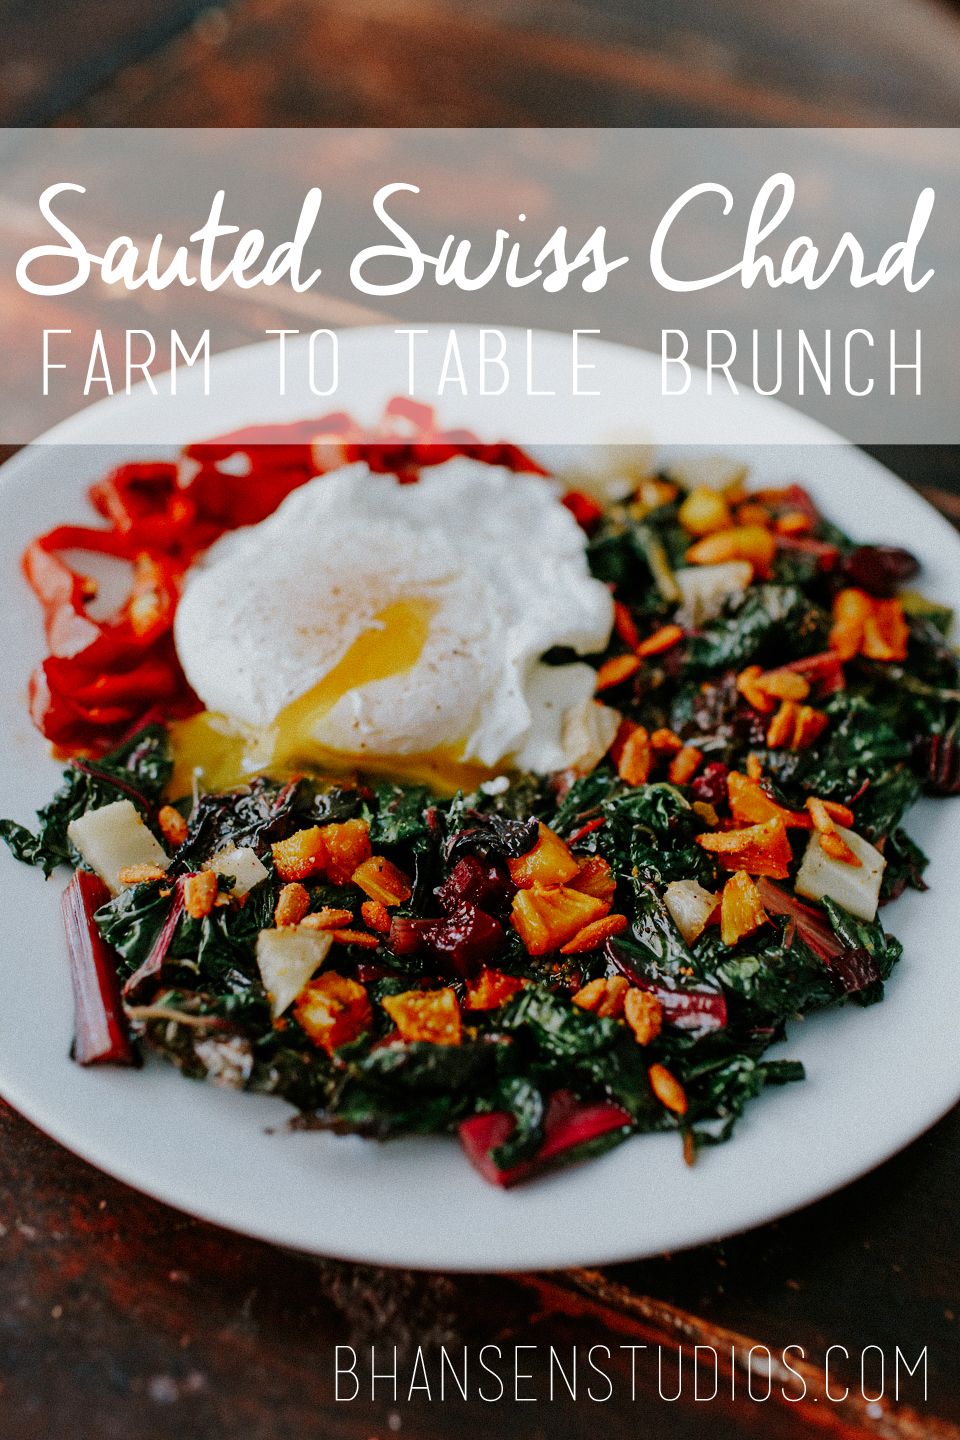 Easy summer farm to table brunch. Swiss chard saute brunch